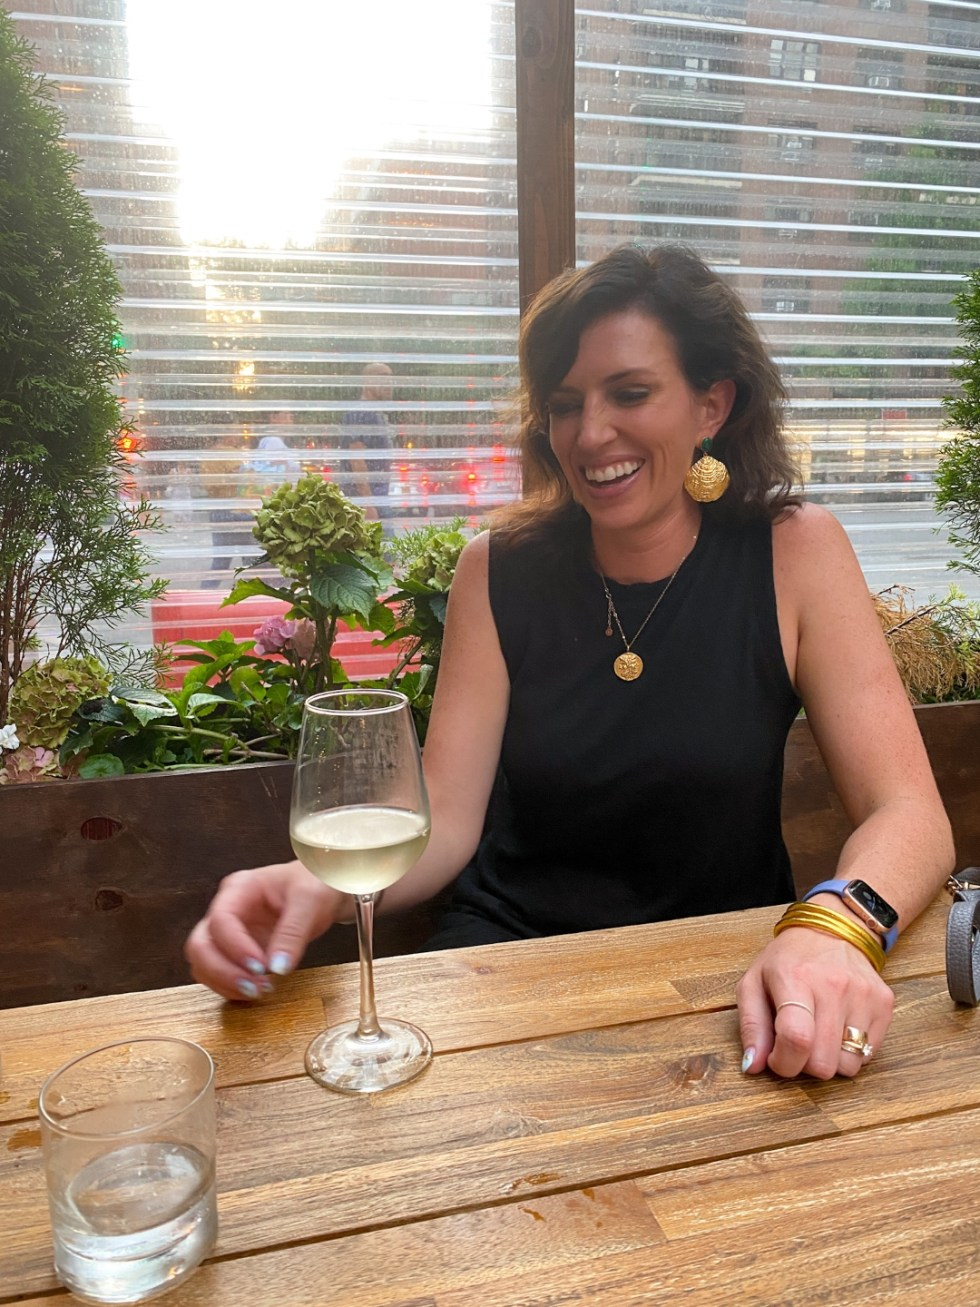 NYC Summer Weekend: Things to Do in NYC in the Summer - I'm Fixin' To - @imfixintoblog   NYC Summer Weekend by popular NC travel blog, I'm Fixin' To: image of a woman drinking a glass of white wine at Ted's Corner Tavern.